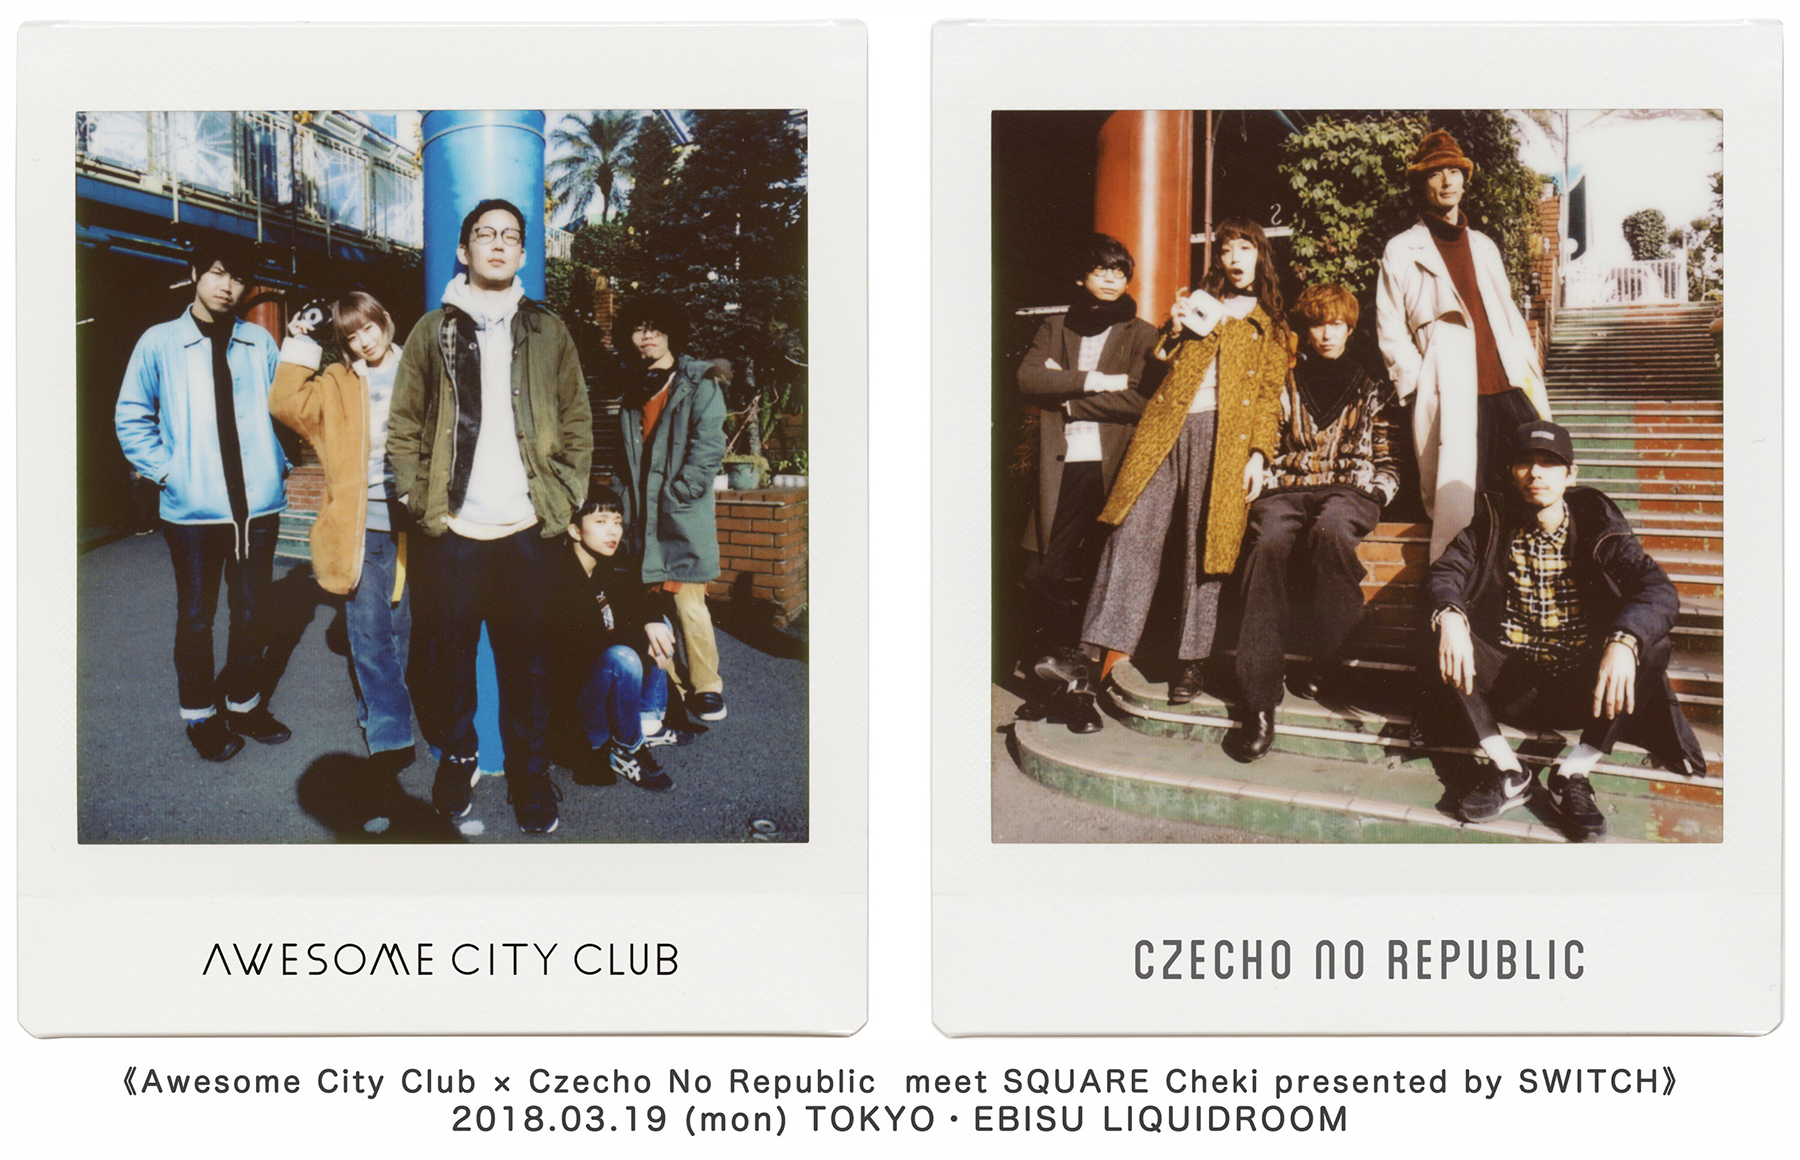 Awesome City Club / Czecho No Republic